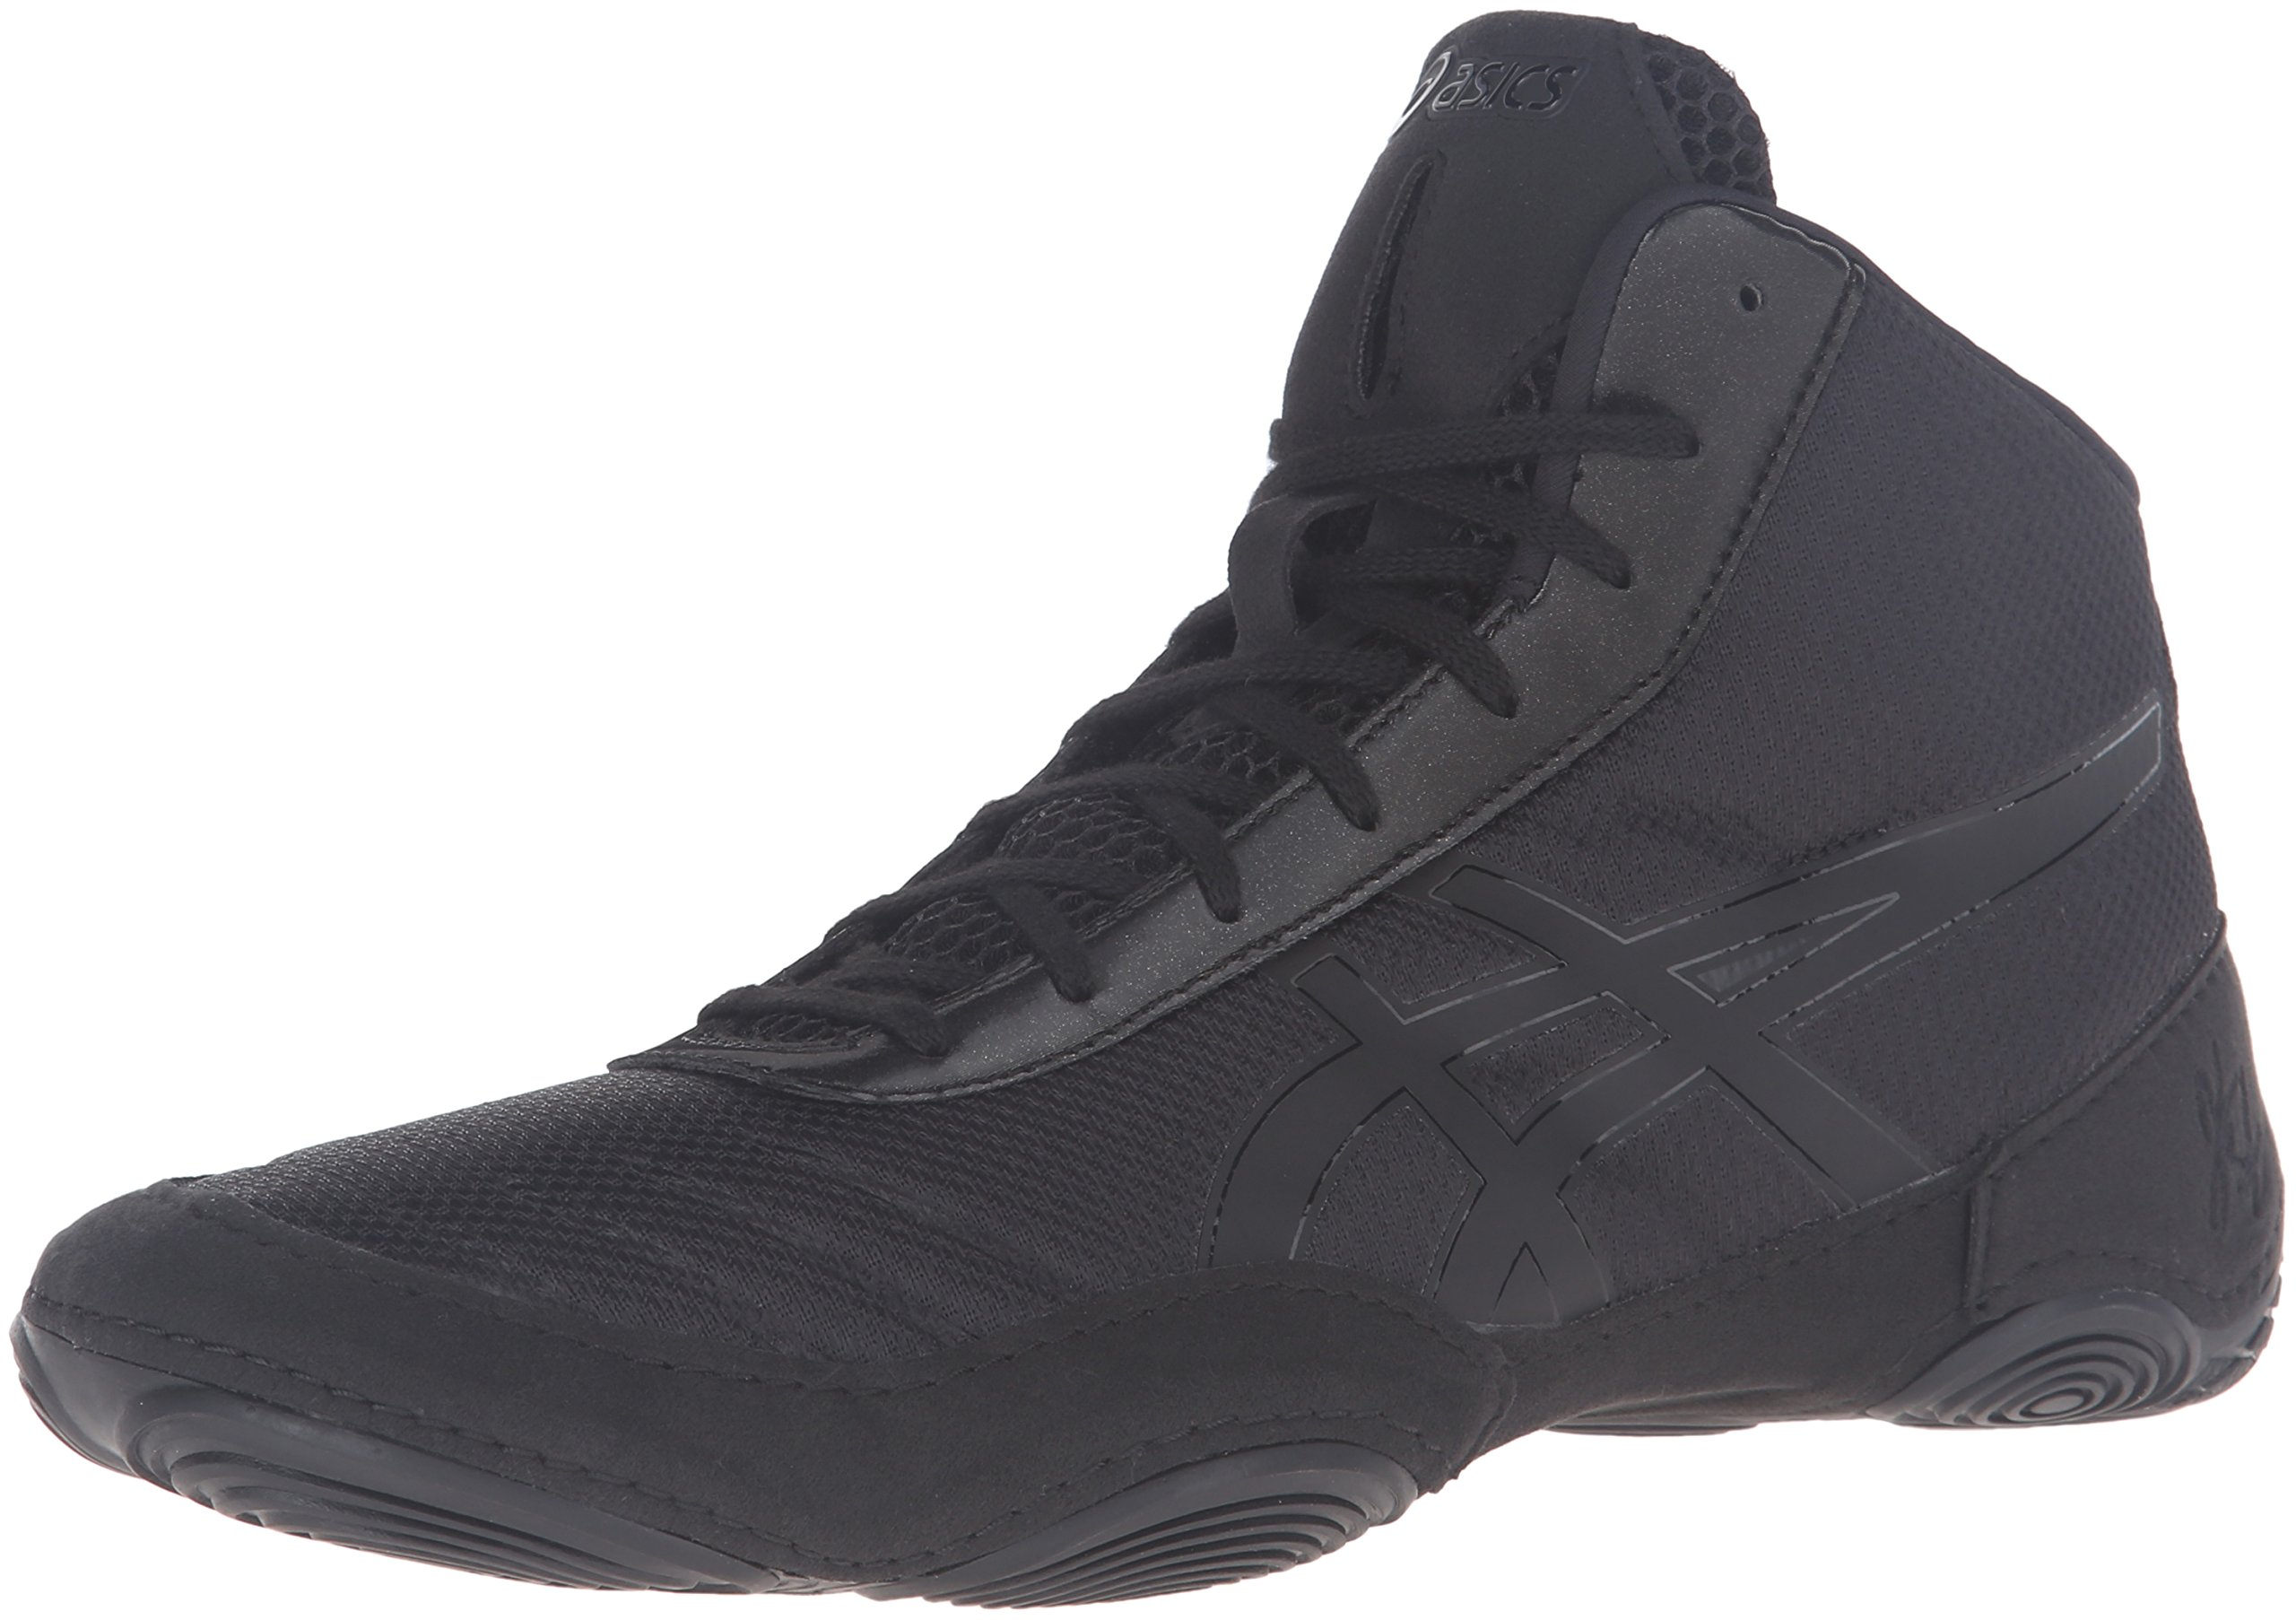 ASICS Men's JB Elite V2.0 Wrestling Shoe, Black/Onyx, 10.5 M US